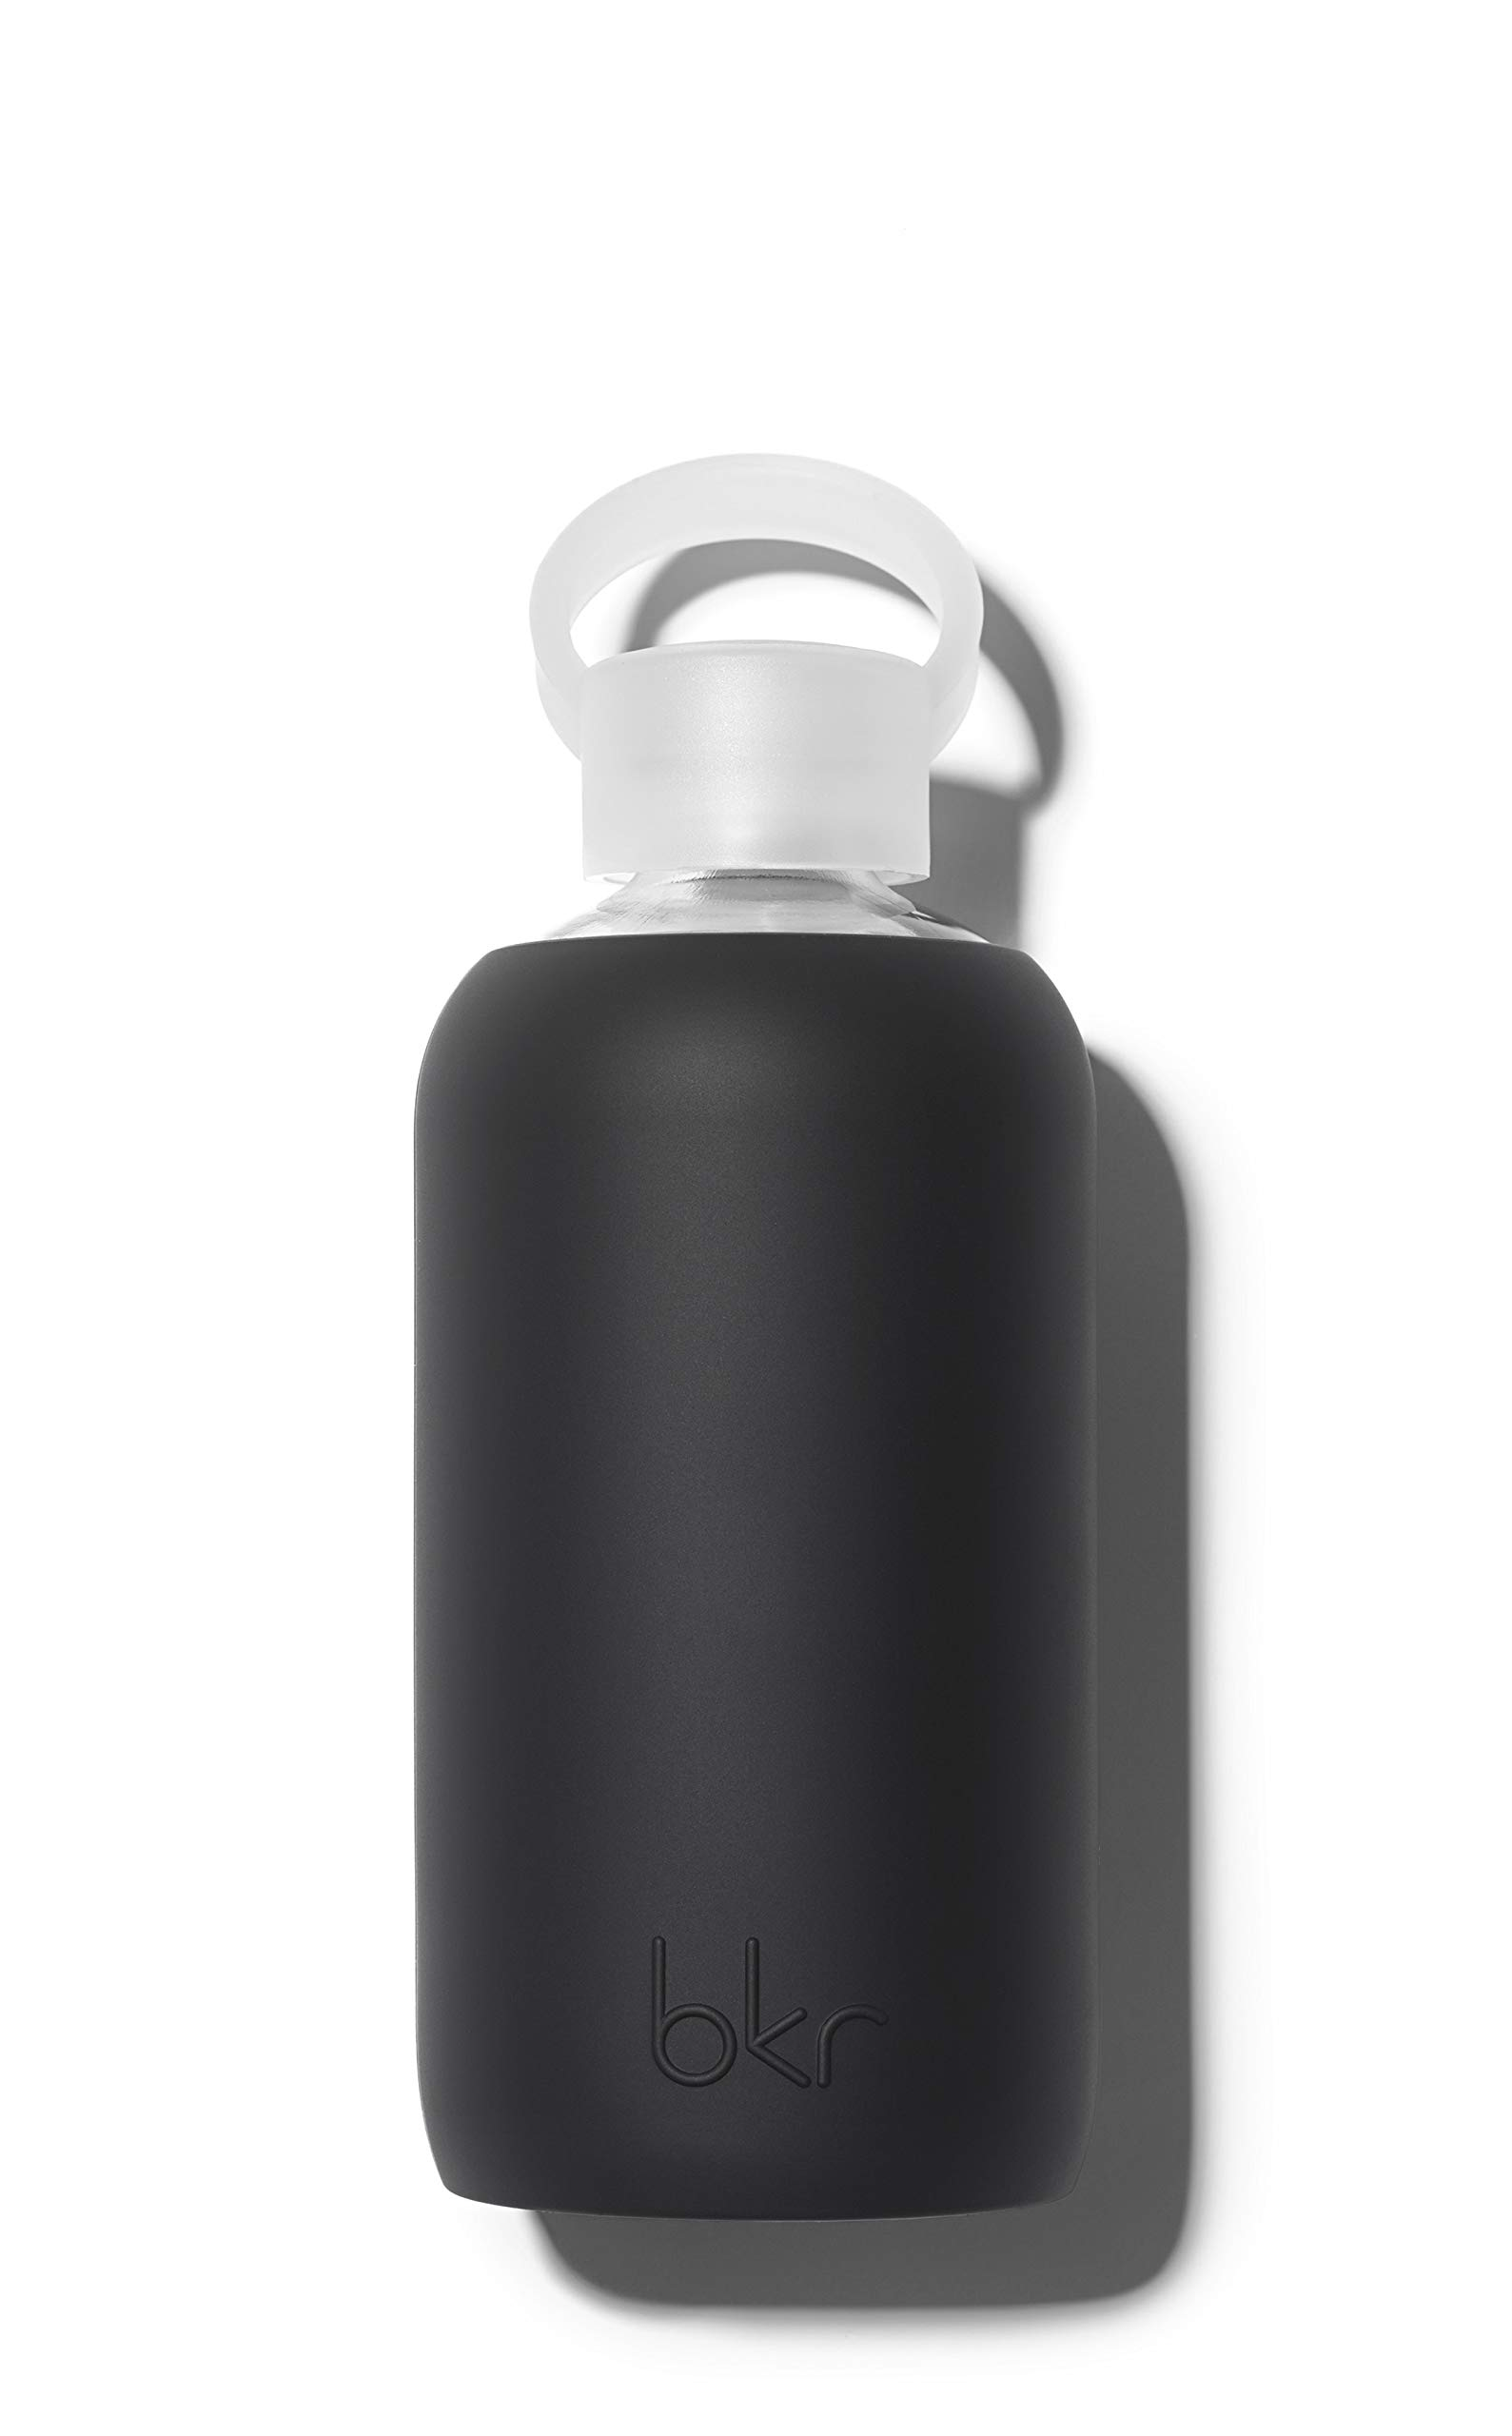 bkr Jet Glass Water Bottle with Smooth Silicone Sleeve for Travel, Narrow Mouth, BPA-Free & Dishwasher Safe, Opaque Black, 16 oz / 500 mL